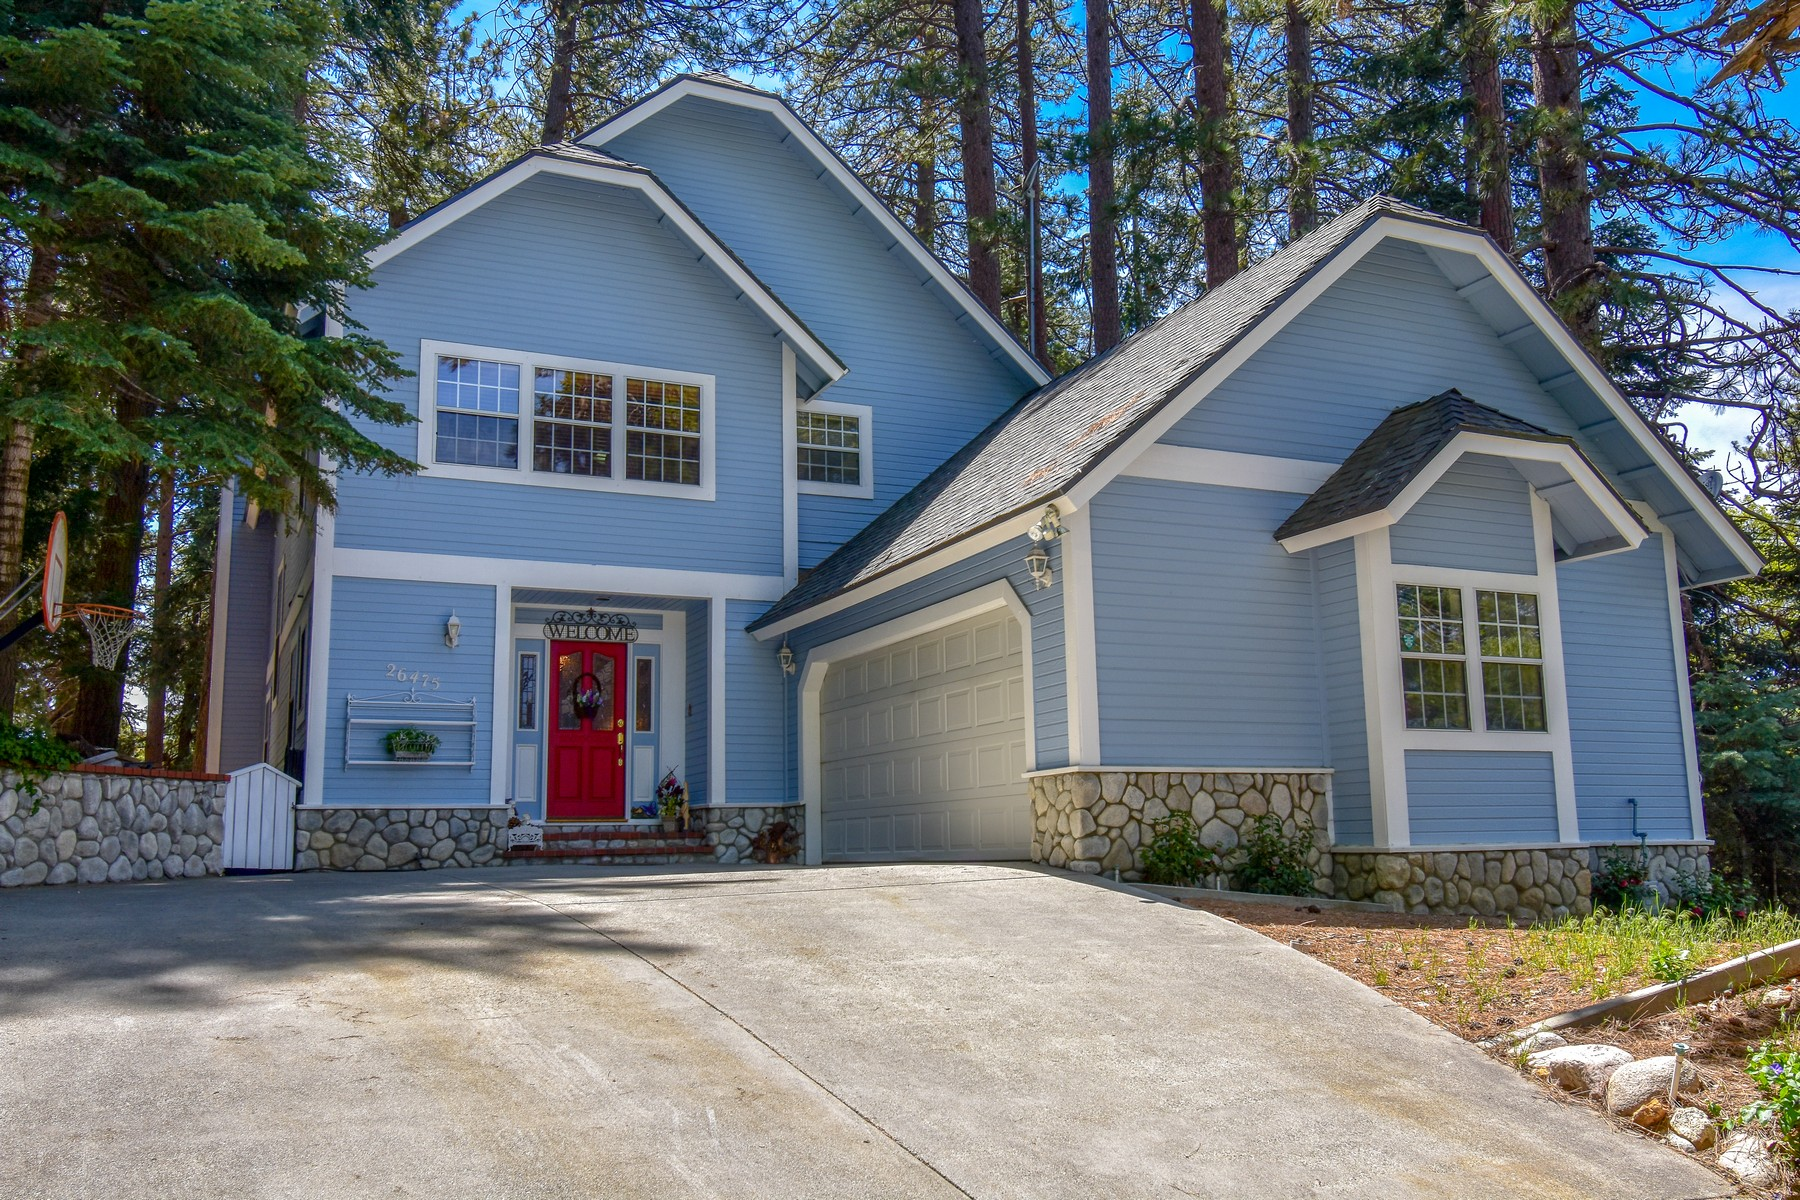 Single Family Homes for Sale at 26475 Augusta Drive, Lake Arrowhead, California 92352 26475 Augusta Drive Lake Arrowhead, California 92352 United States